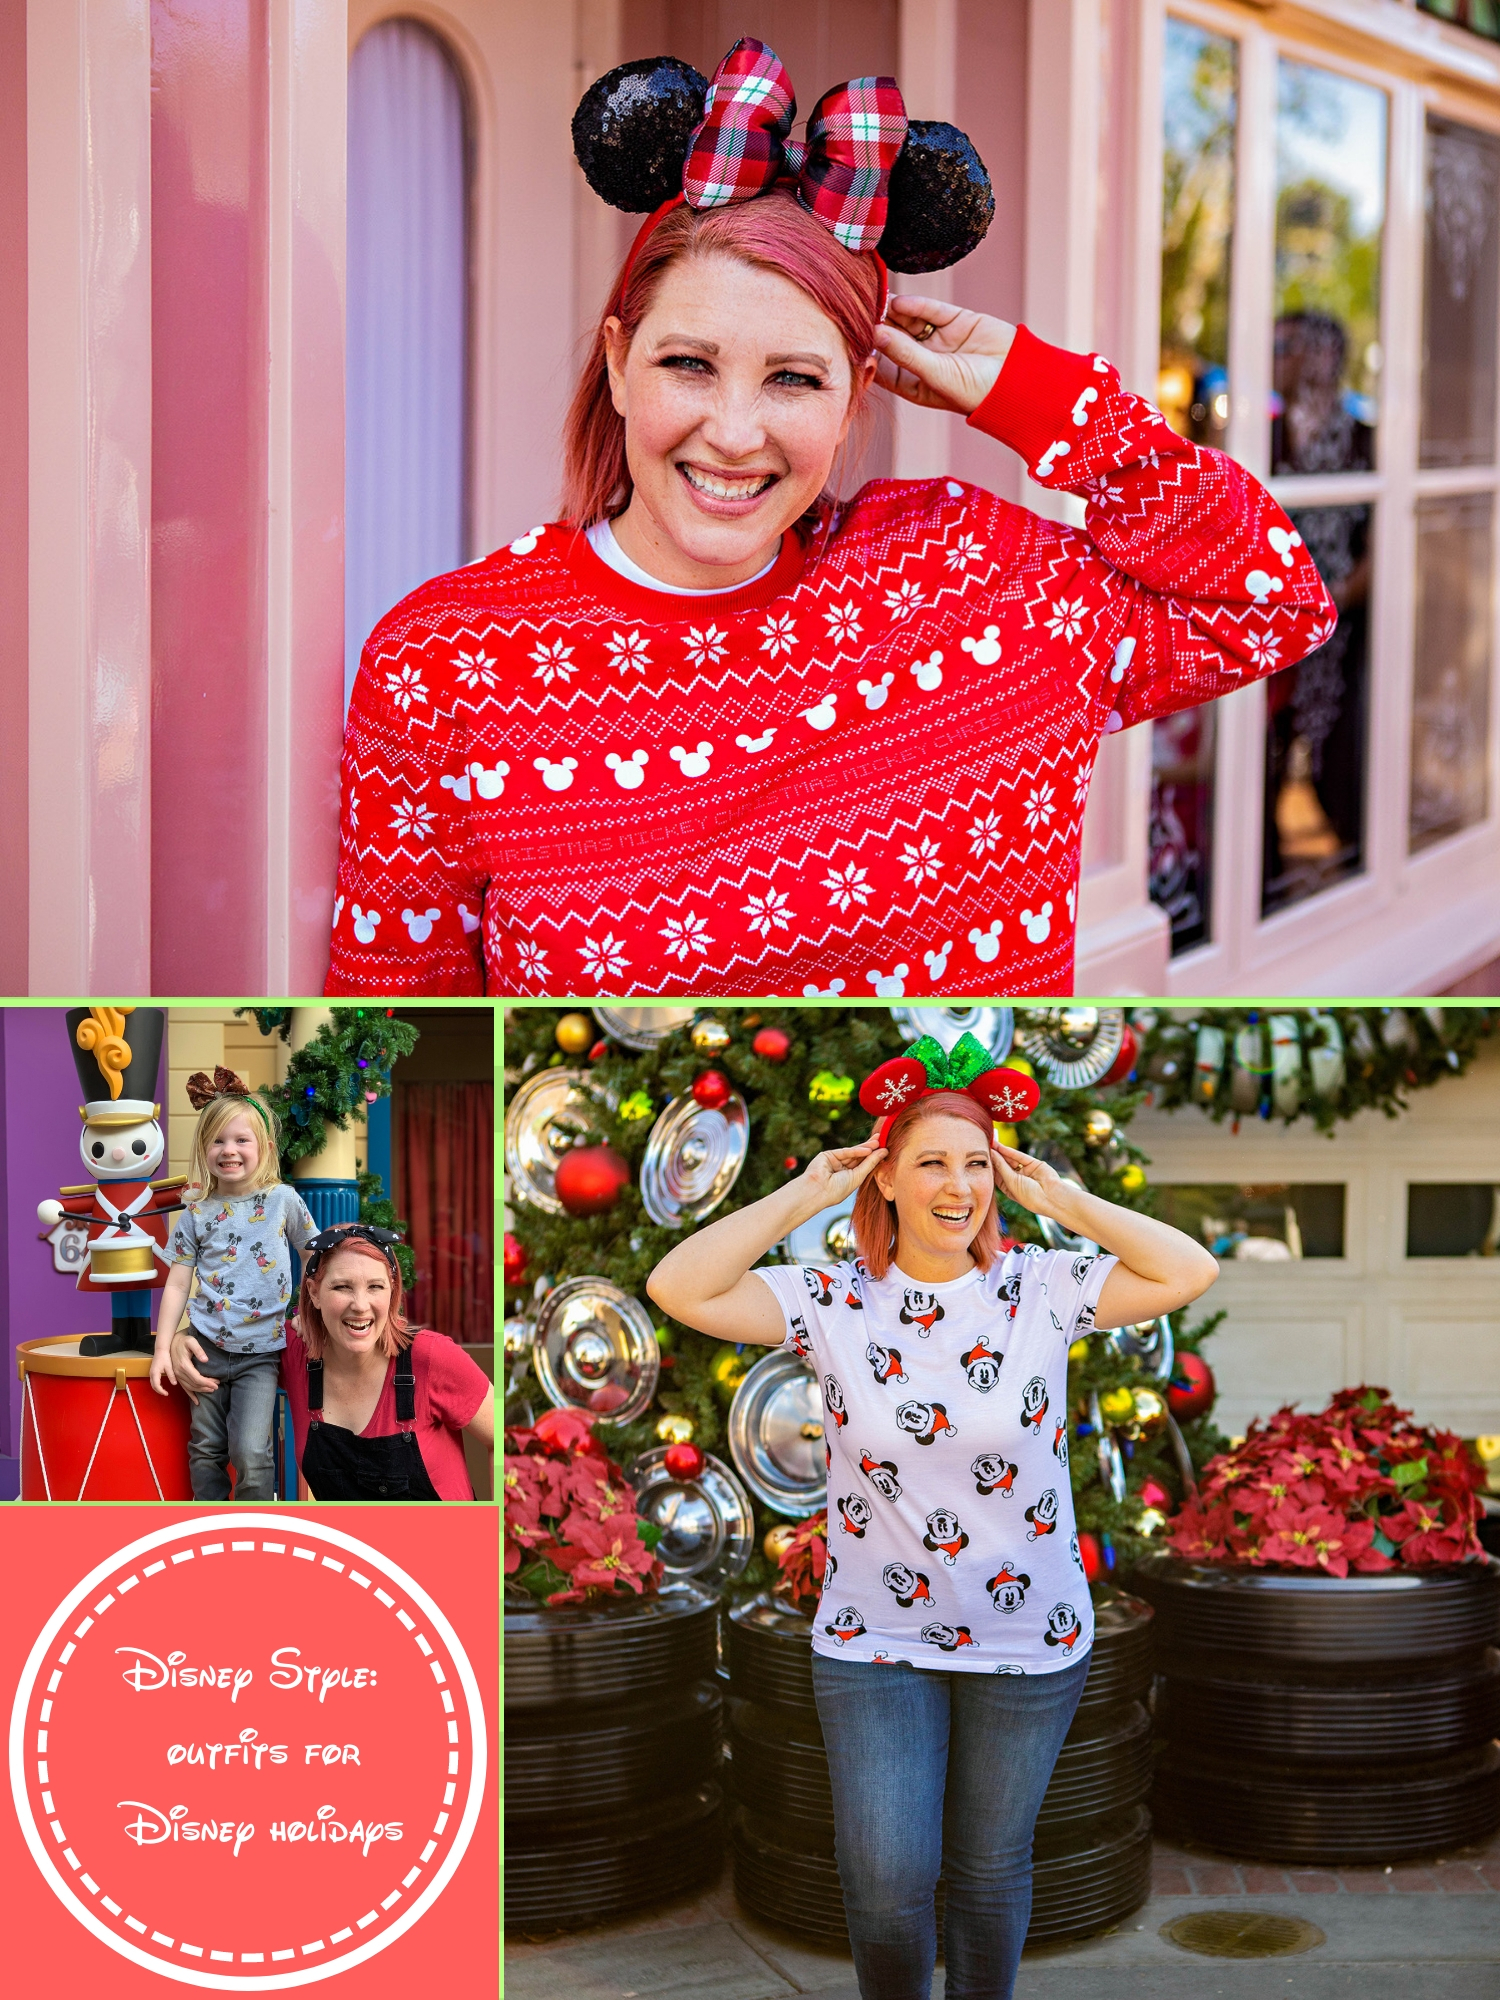 Visiting Disneyland Christmas 2018? These Disneyland outfits are PERFECT for days at the park!